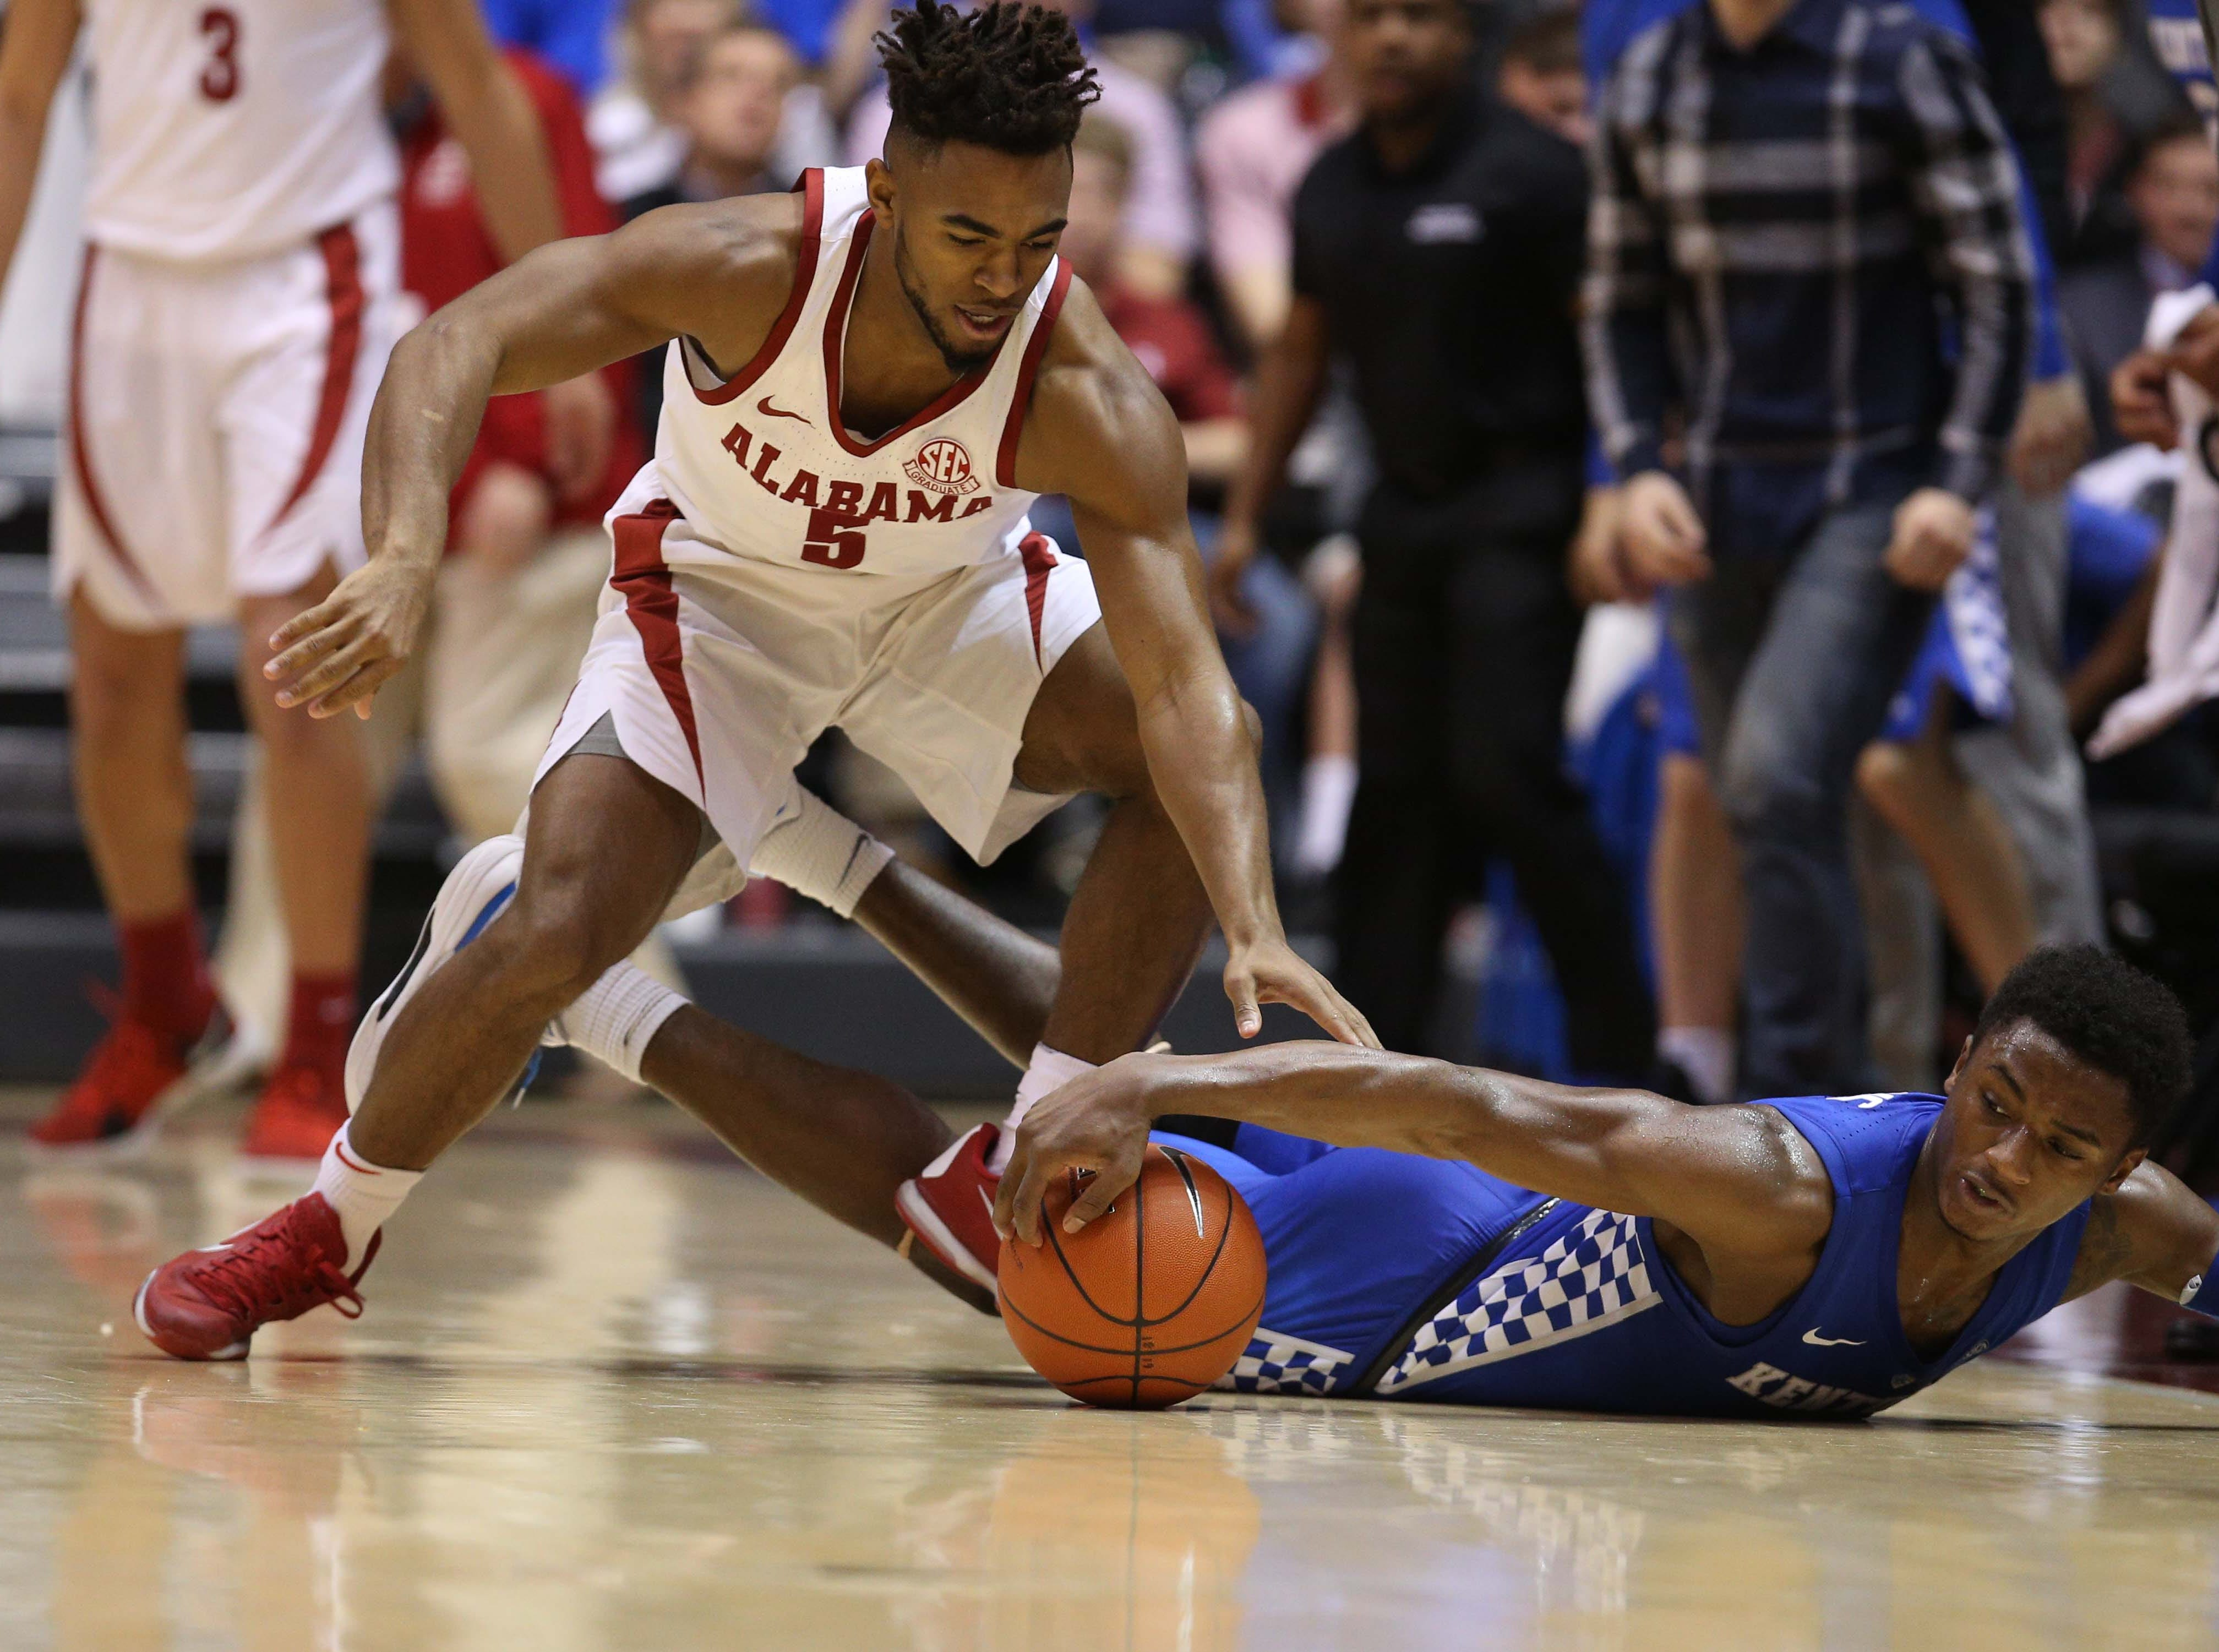 Jan 5, 2019; Tuscaloosa, AL, USA; Alabama Crimson Tide guard Avery Johnson Jr. (5) and Kentucky Wildcats guard Ashton Hagans (2) go for the ball during the first half at Coleman Coliseum. Mandatory Credit: Marvin Gentry-USA TODAY Sports